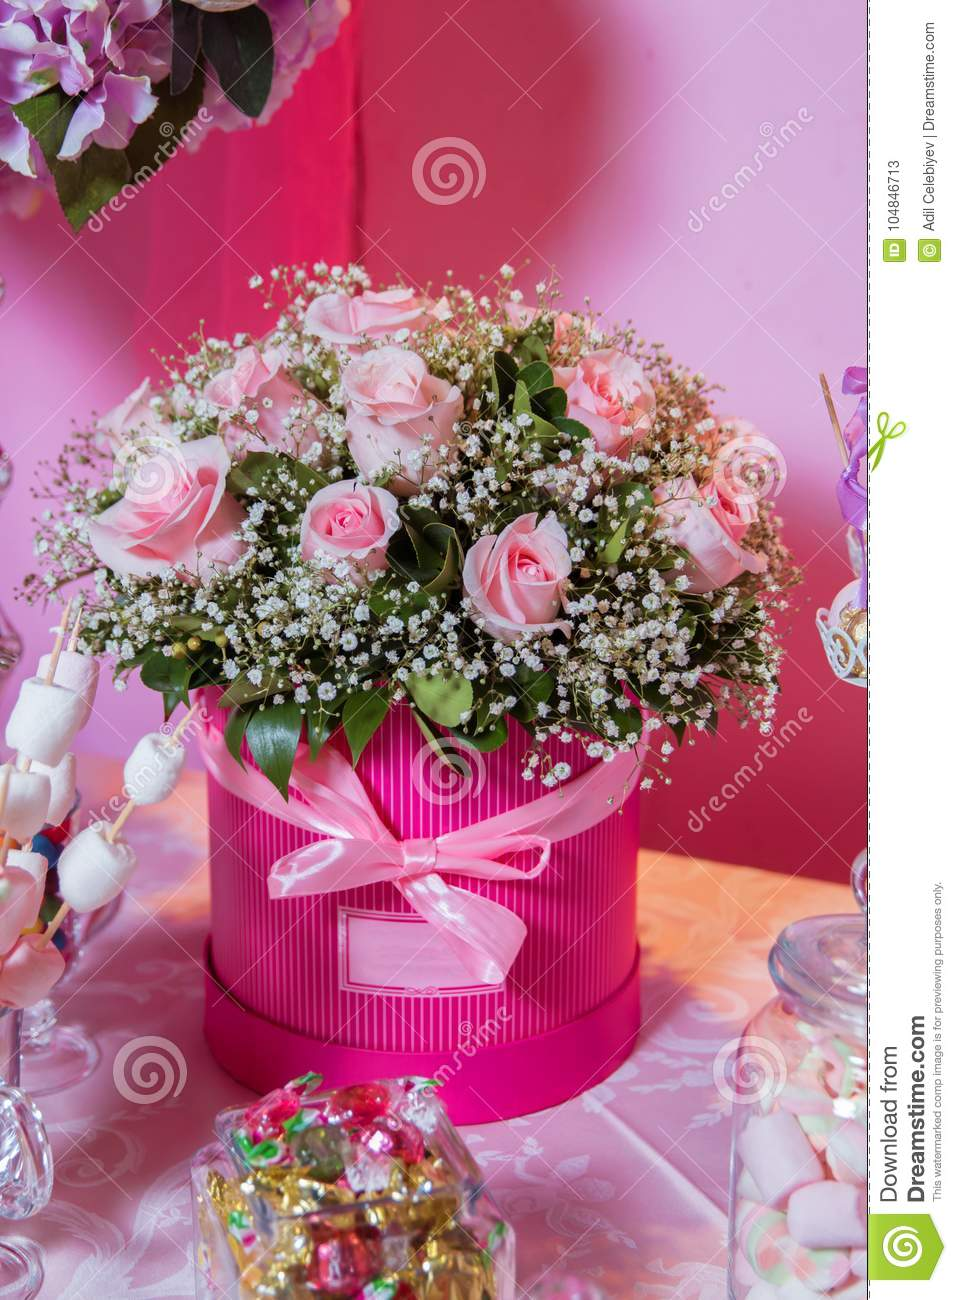 Candy bar bright white interior with lots of pink flowers pink royalty free stock photo izmirmasajfo Choice Image